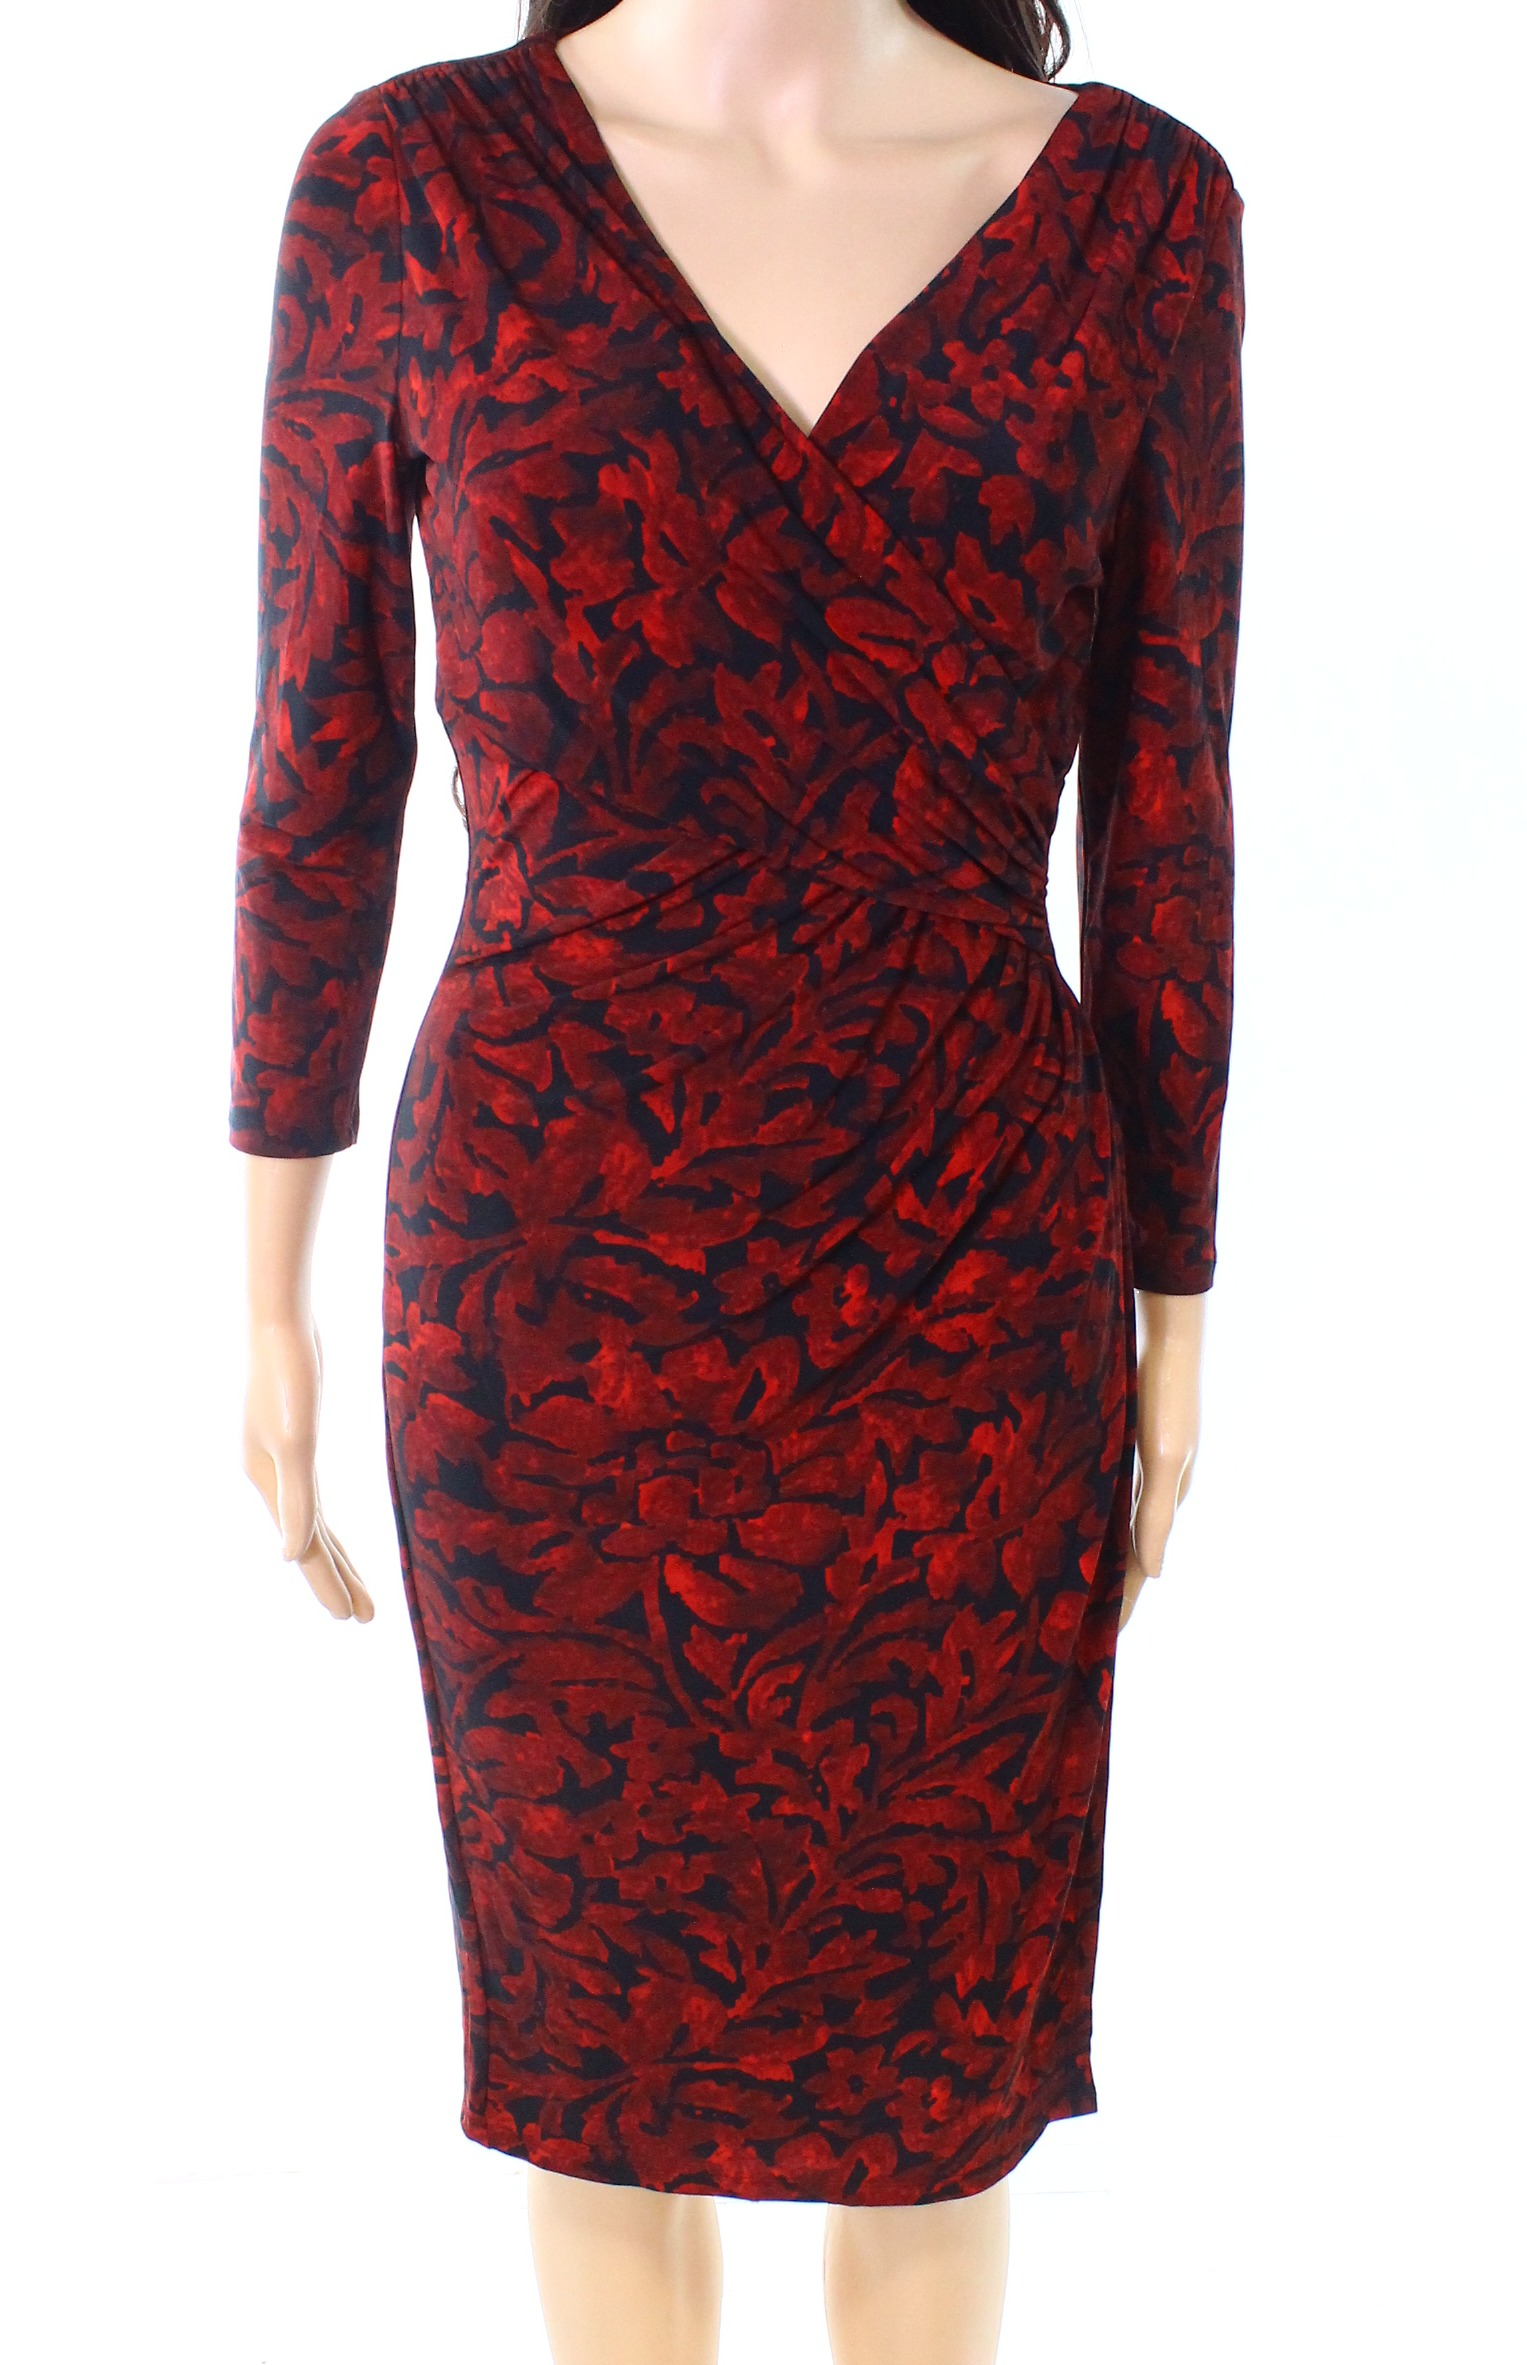 Lauren by Ralph Lauren NEW Red Womens USA Size 4 Jersey Sheath Dress - 145